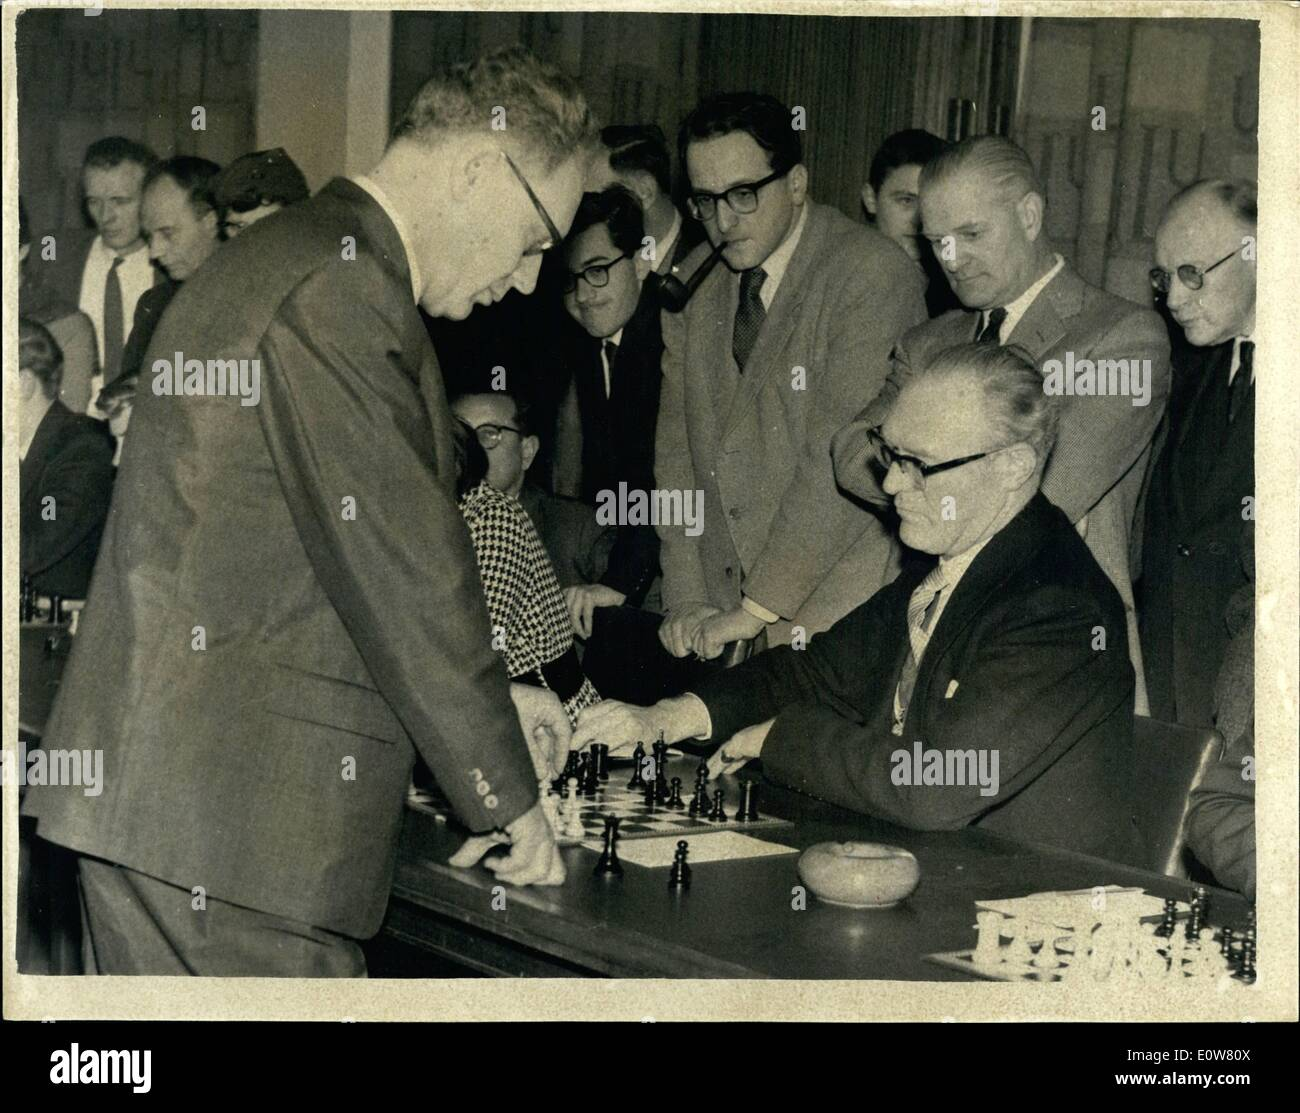 Jan. 01, 1962 - THE LORD MAYOR OF LONDON PLAYS AGAINST THE WORLD CHESS CHAMPION IN SIMULTANEOUS CBES MATCH The world chess champion, Russia, 50 year old MIKHAIL BOTVINNIK, today played a simultaneous exhibition chose match against twenty opponents, including RIR FREDERICK HOARE, the Lord Mayor of London, at the London University. Botvinnik recently won the premiers tournament of the Haetinge Chess Congress - Stock Image